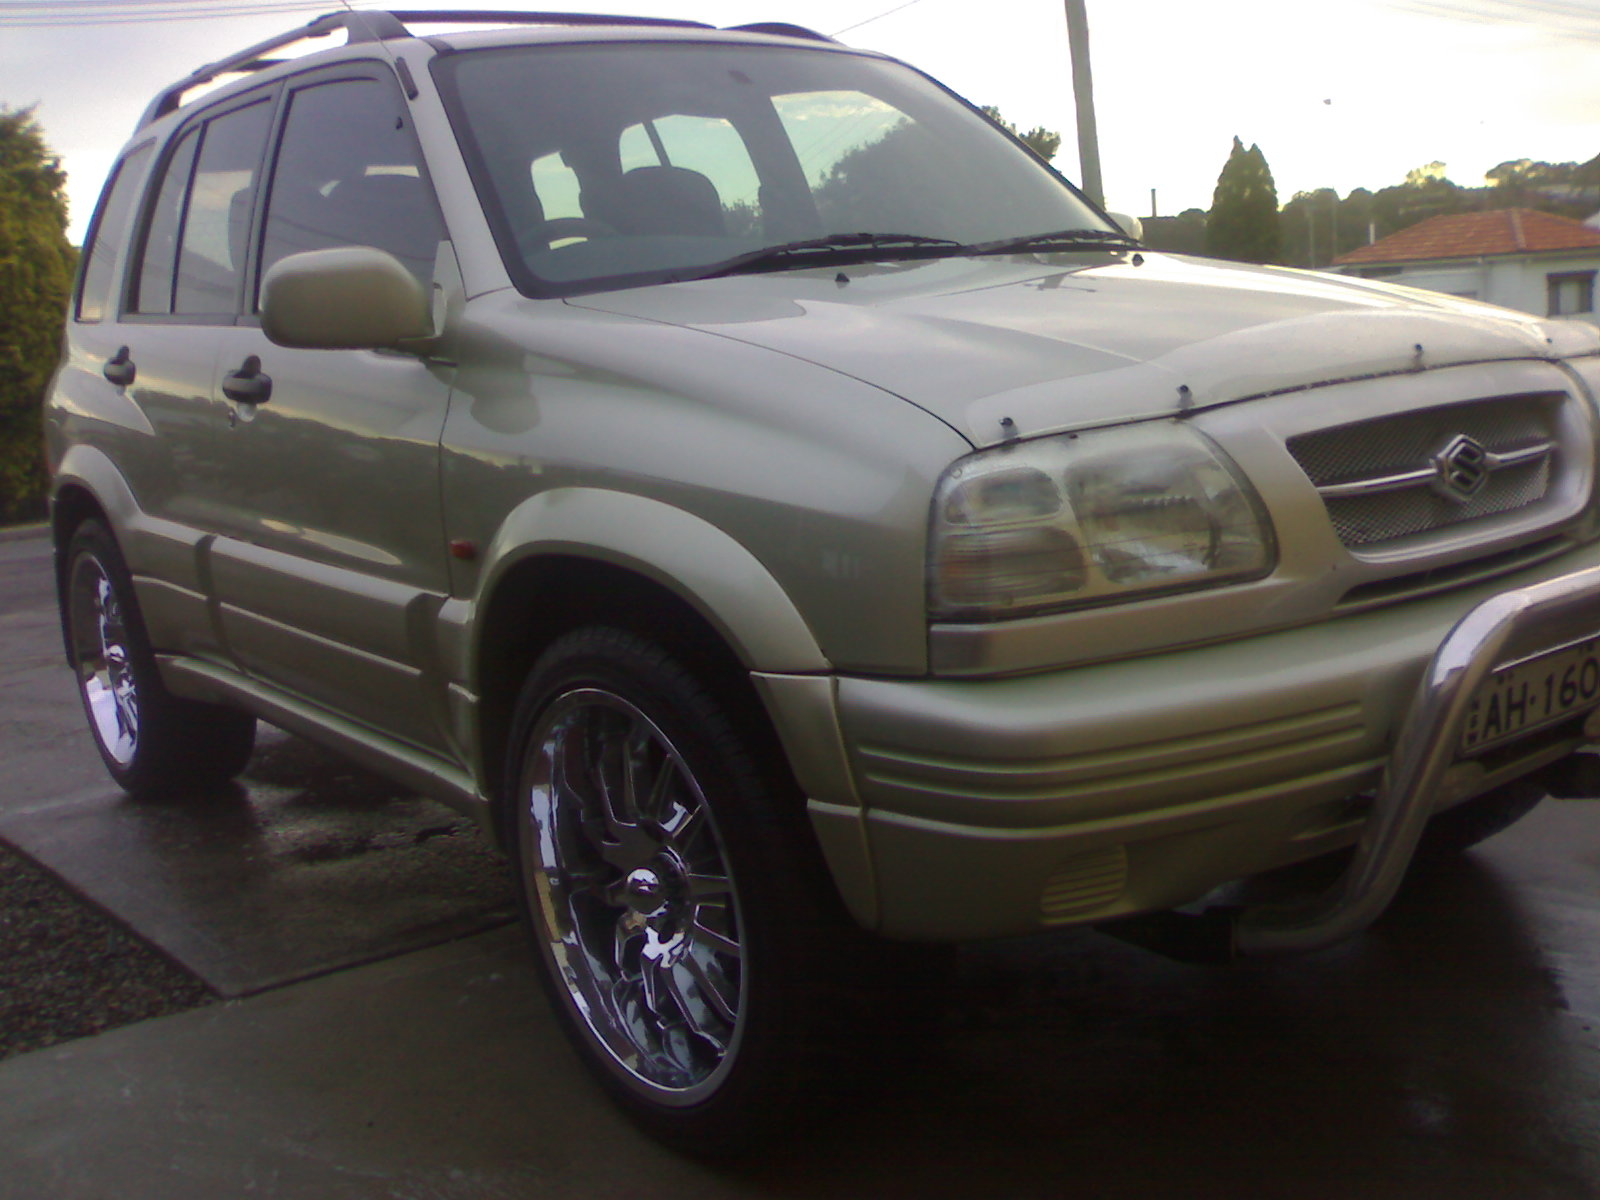 2000 Suzuki Grand Vitara 4 Dr Limited 4WD SUV picture